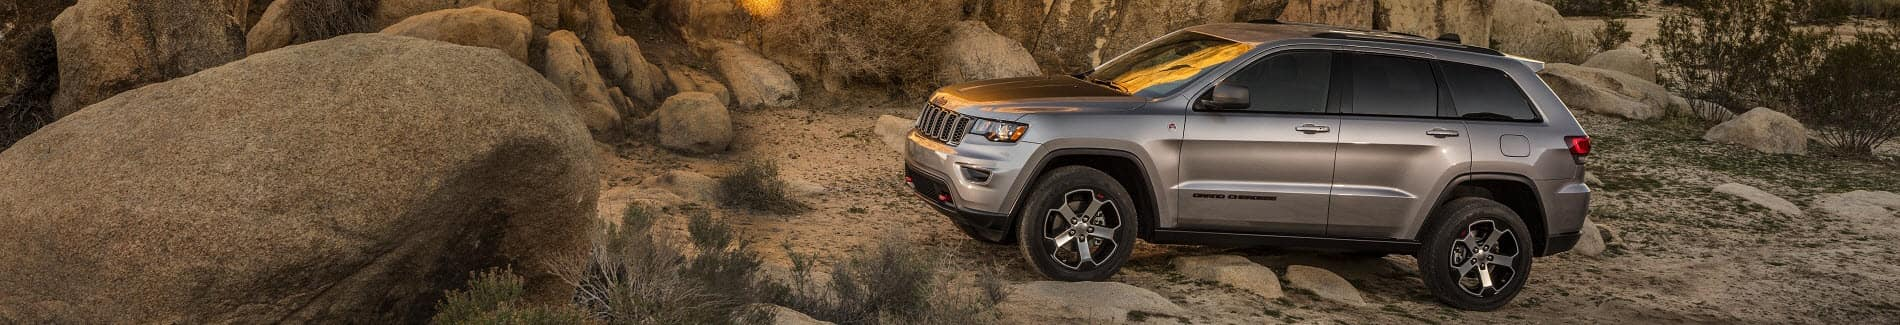 Top 3 Features of the Jeep Grand Cherokee Interior Medford MA